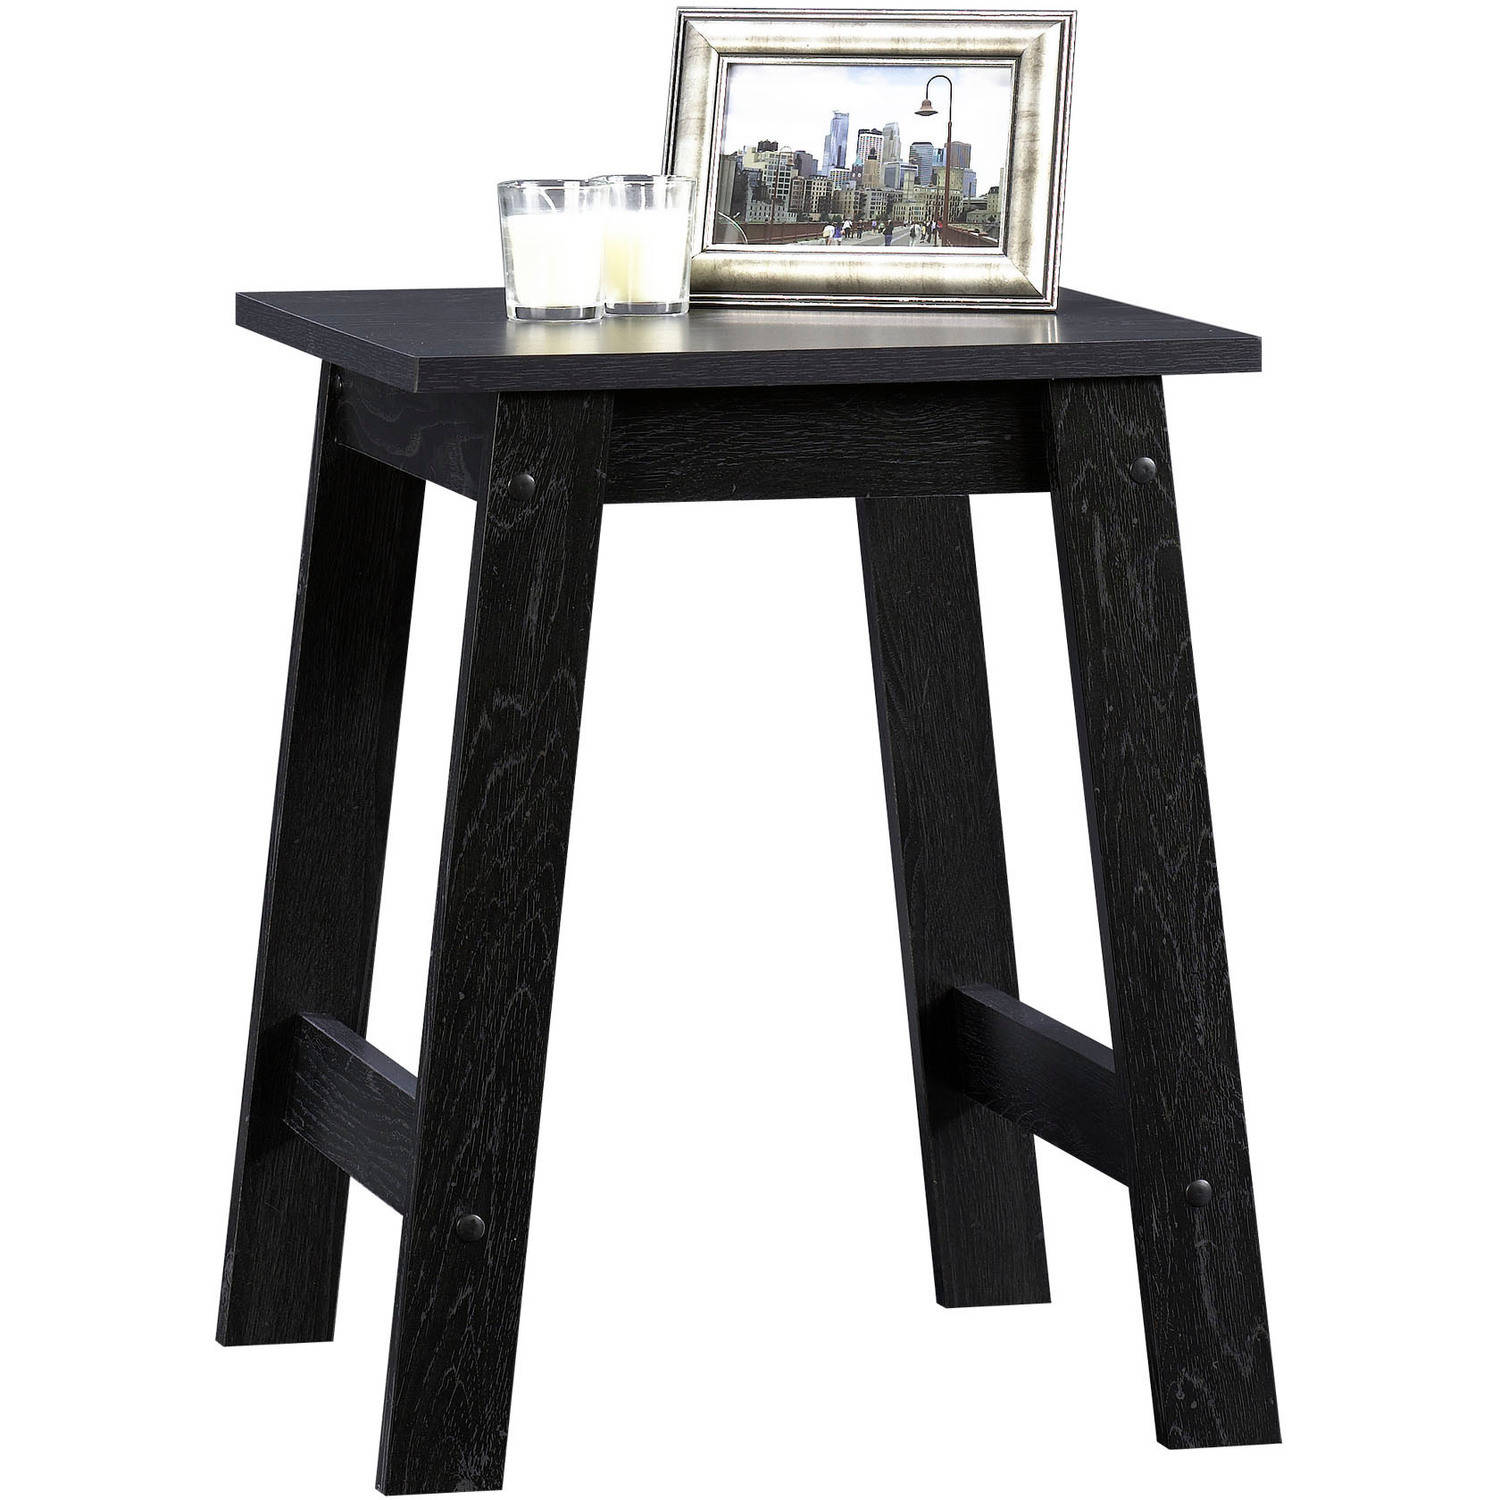 Sauder Beginnings Collection Side Table, Black